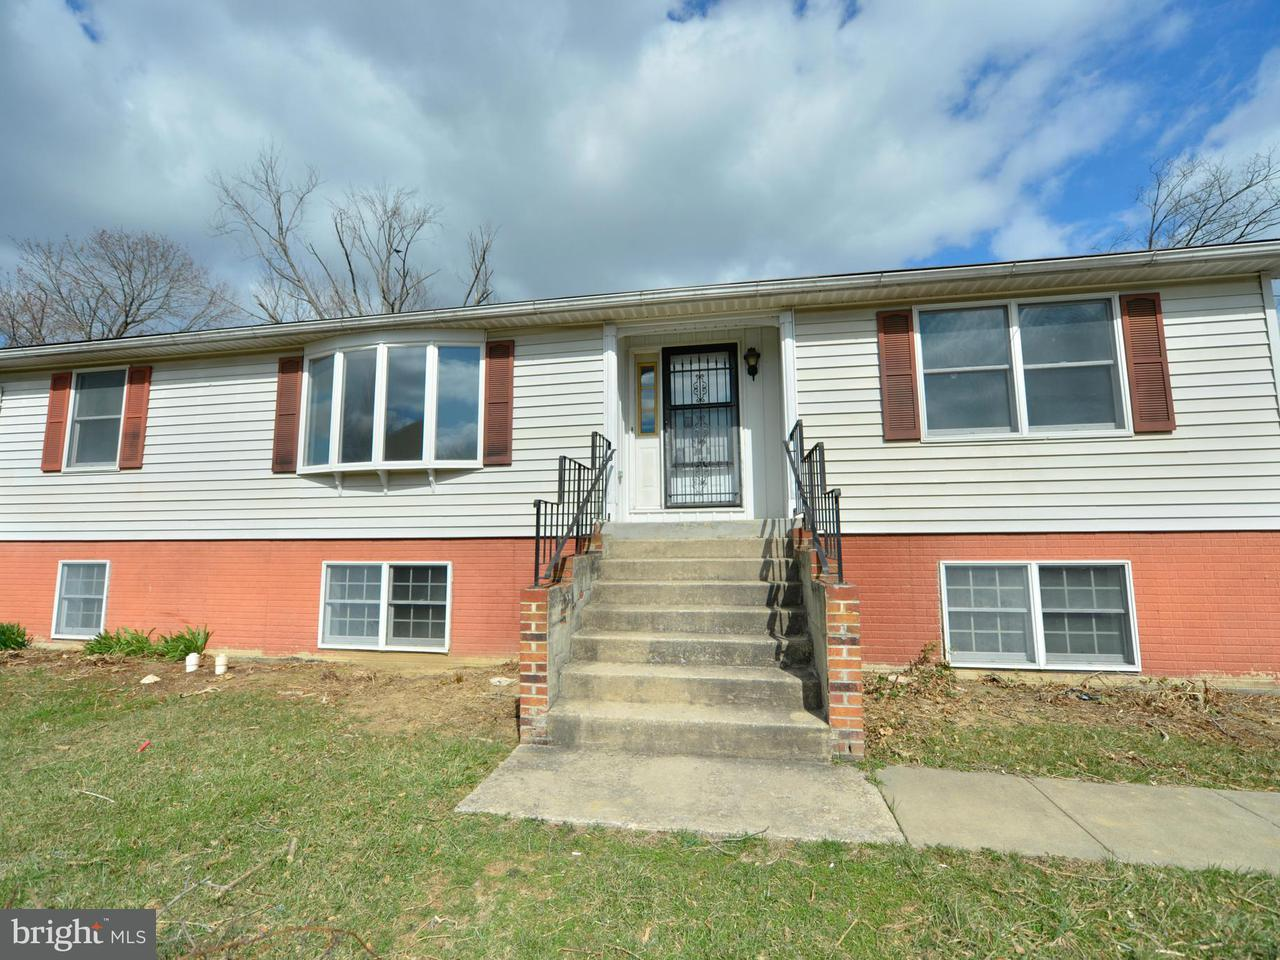 Other Residential for Rent at 311 11th Street #b Purcellville, Virginia 20132 United States